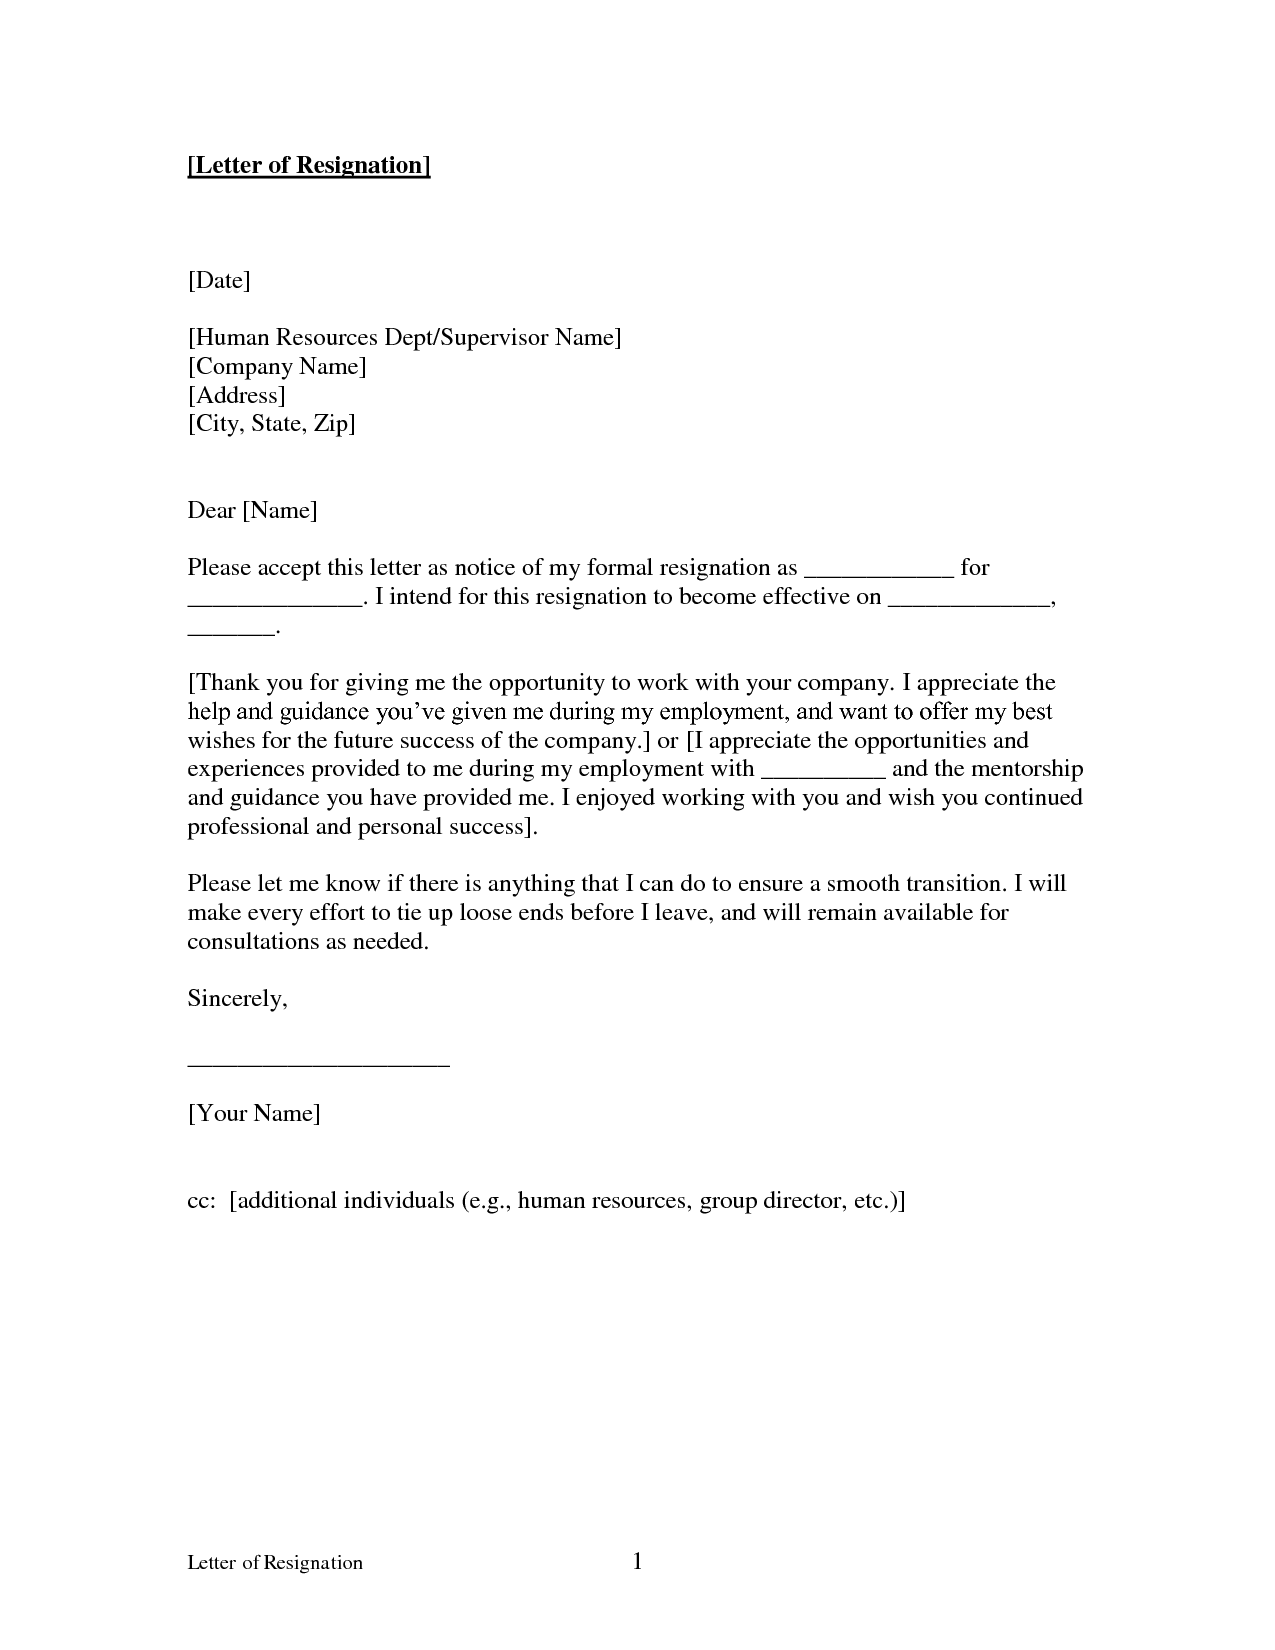 resignation letter examples professional resume cover resignation letter examples teacher resignation letter examples the balance letters of resignation template centredassistance